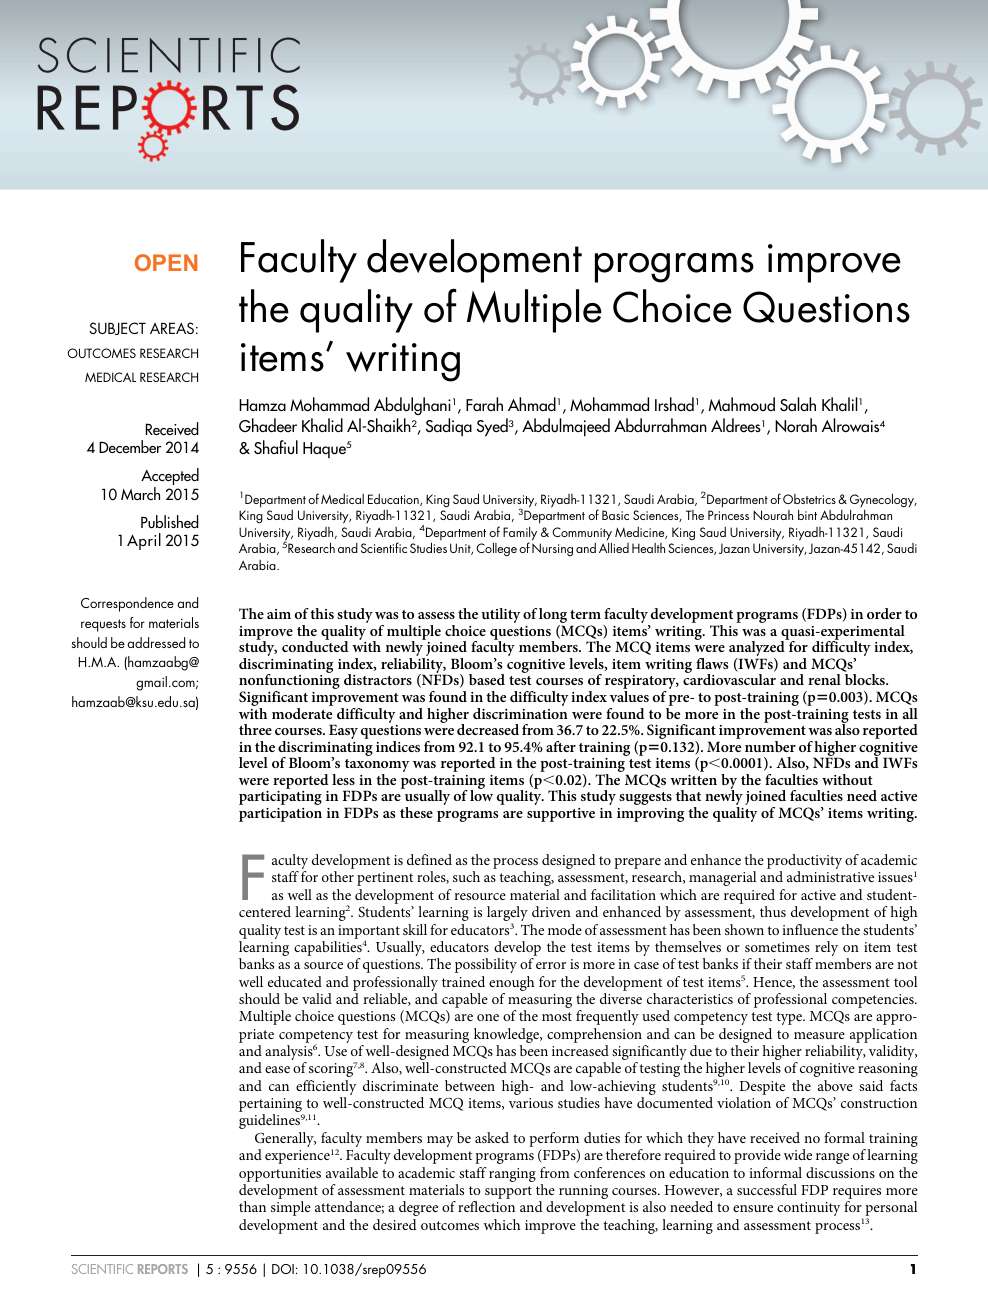 Faculty development programs improve the quality of Multiple